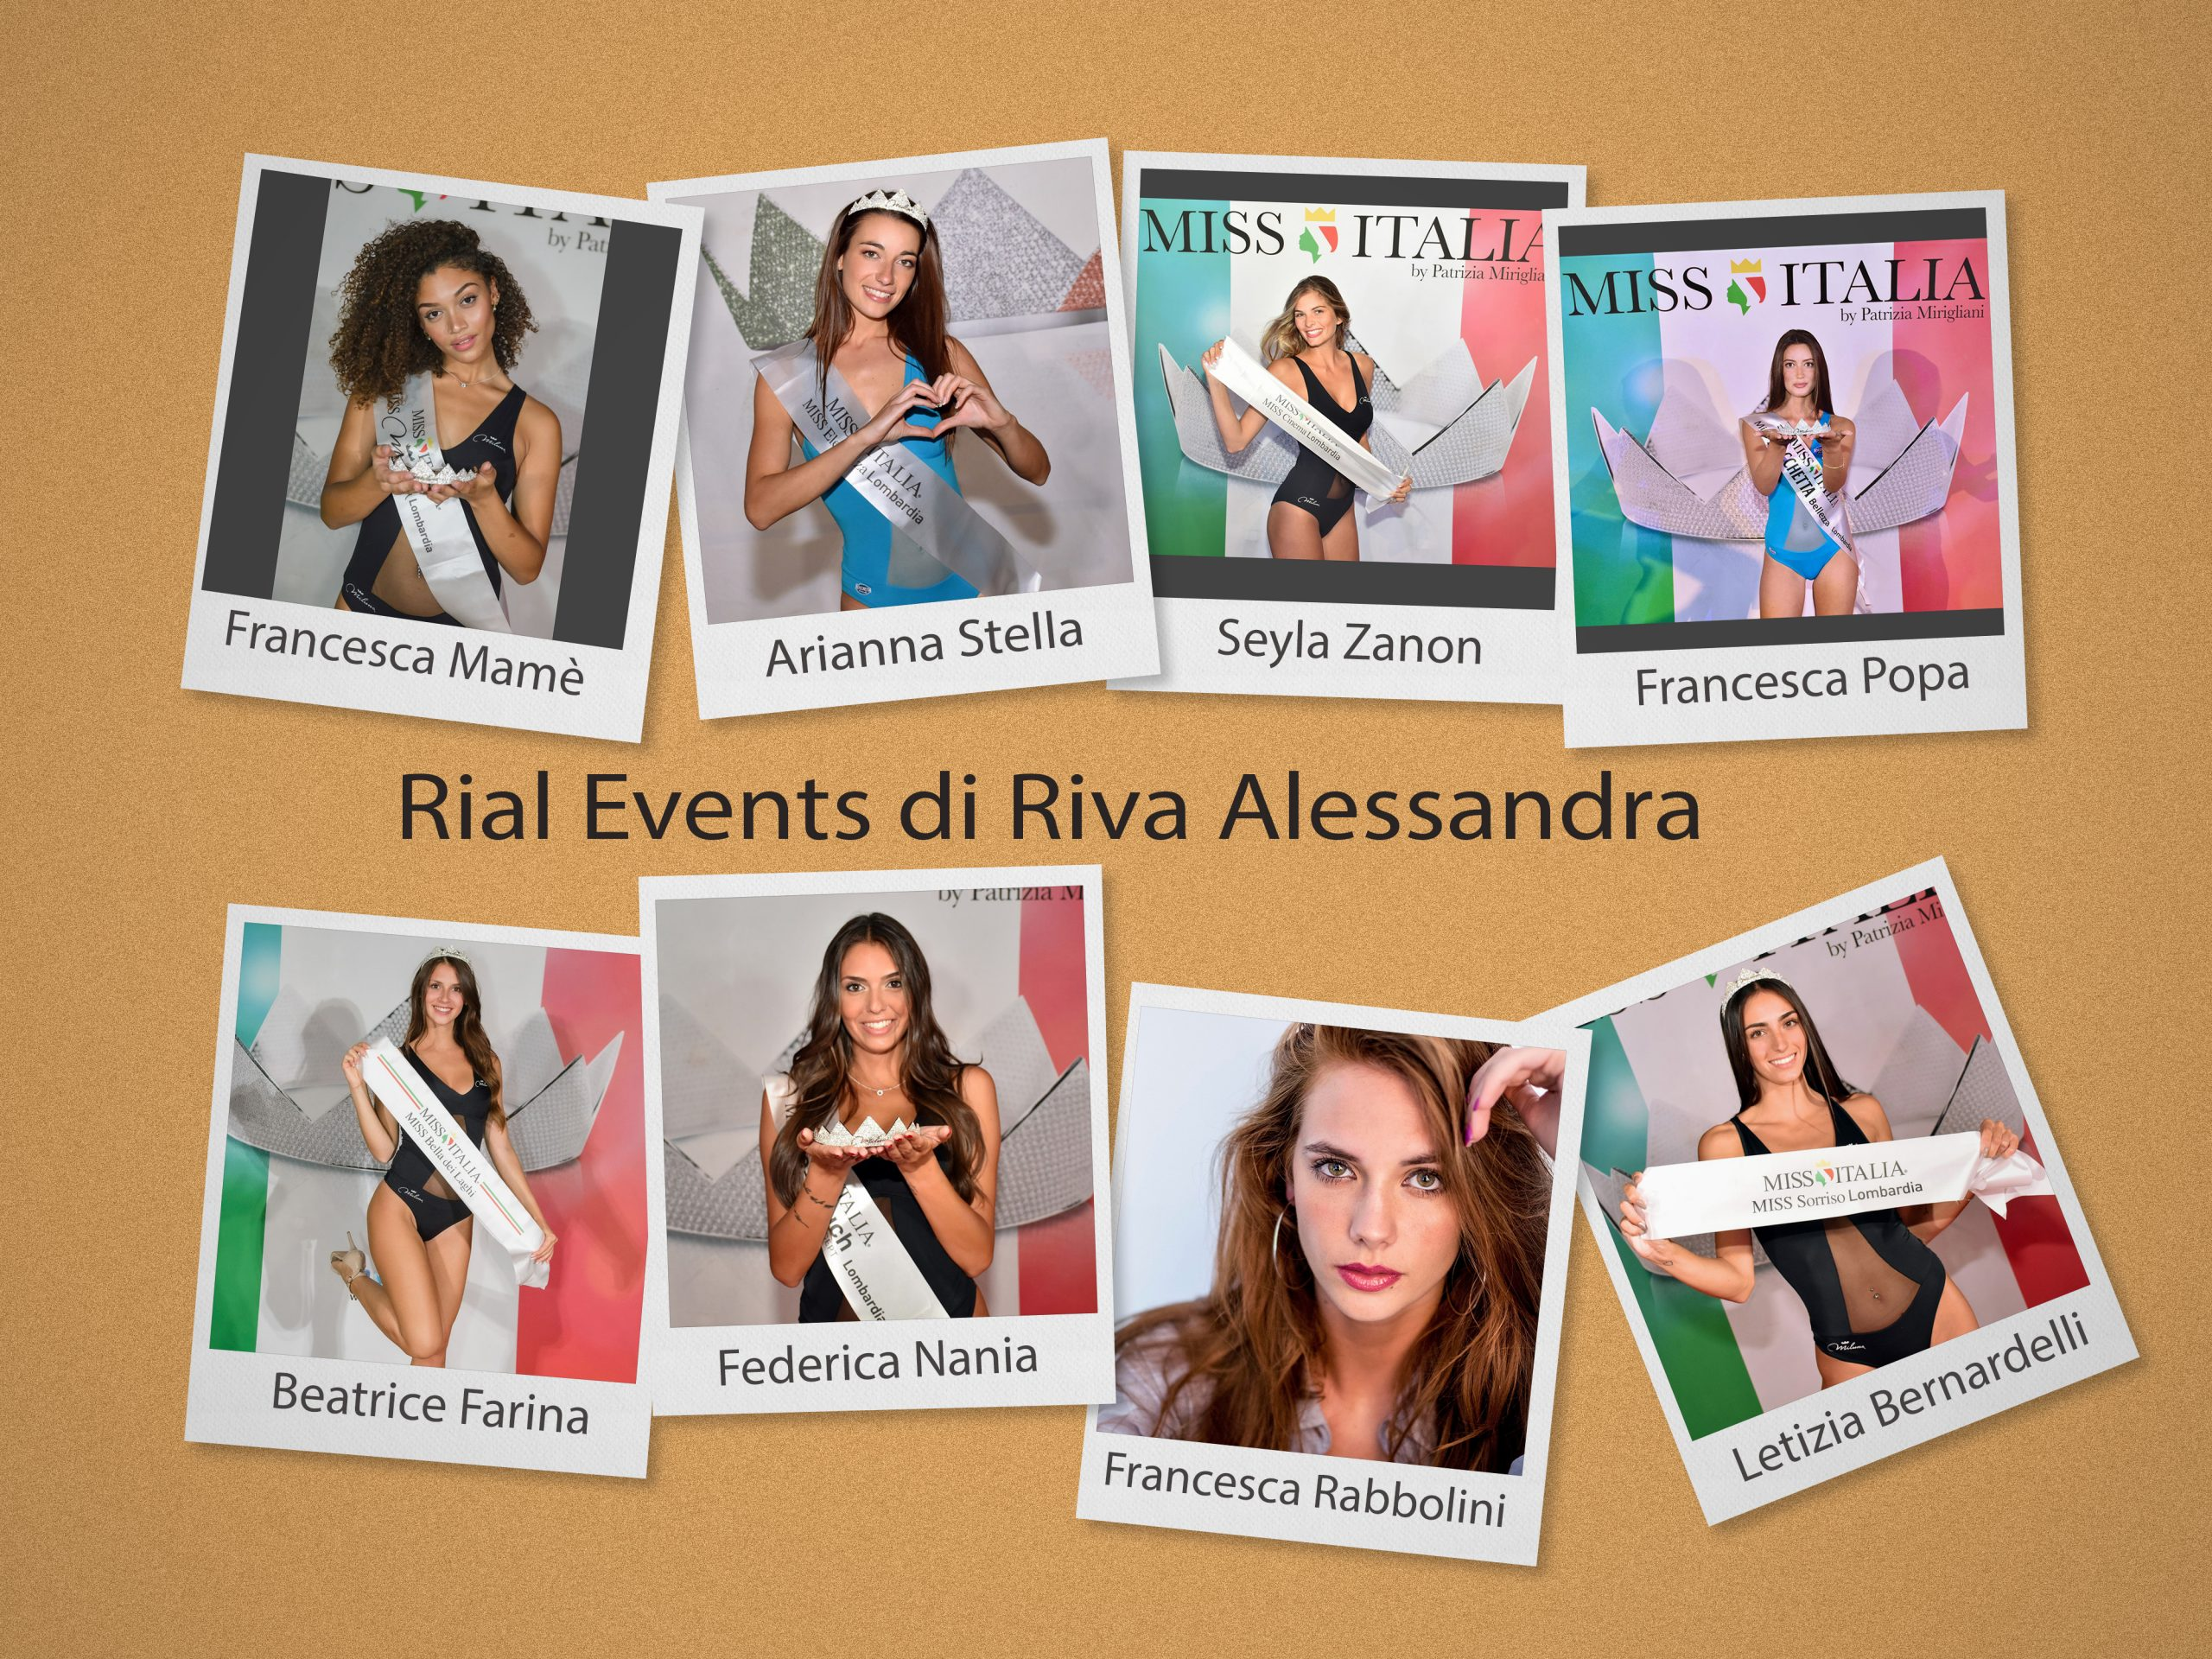 RialEvents